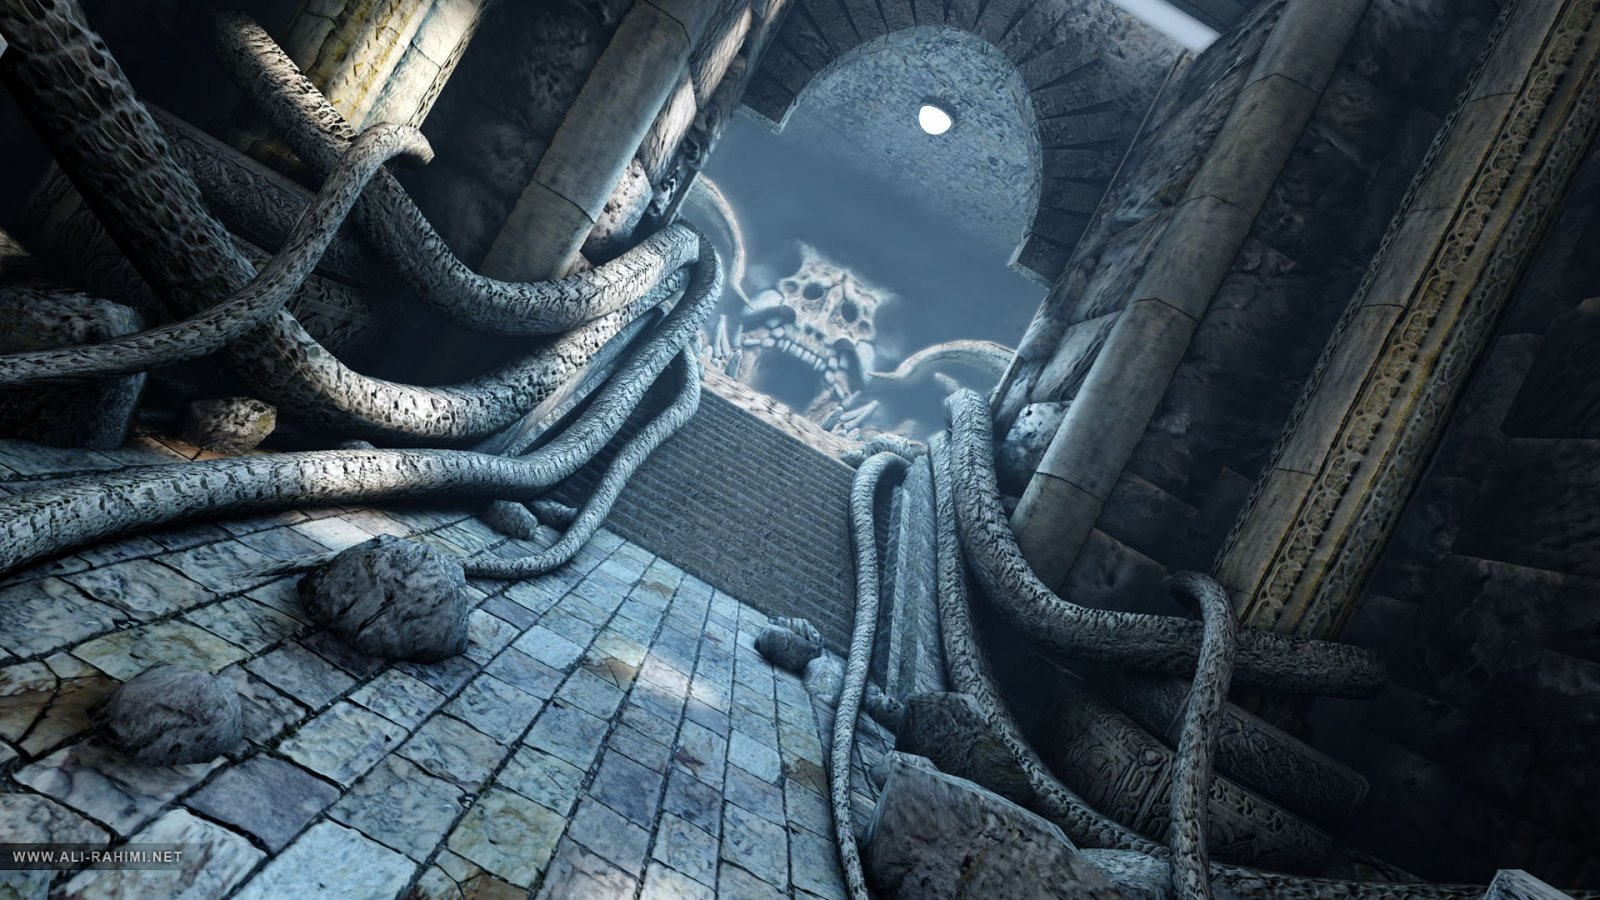 1600x900_8510_Temple_2_3d_creature_fantasy_interior_temple_picture_image_digital_art.jpg